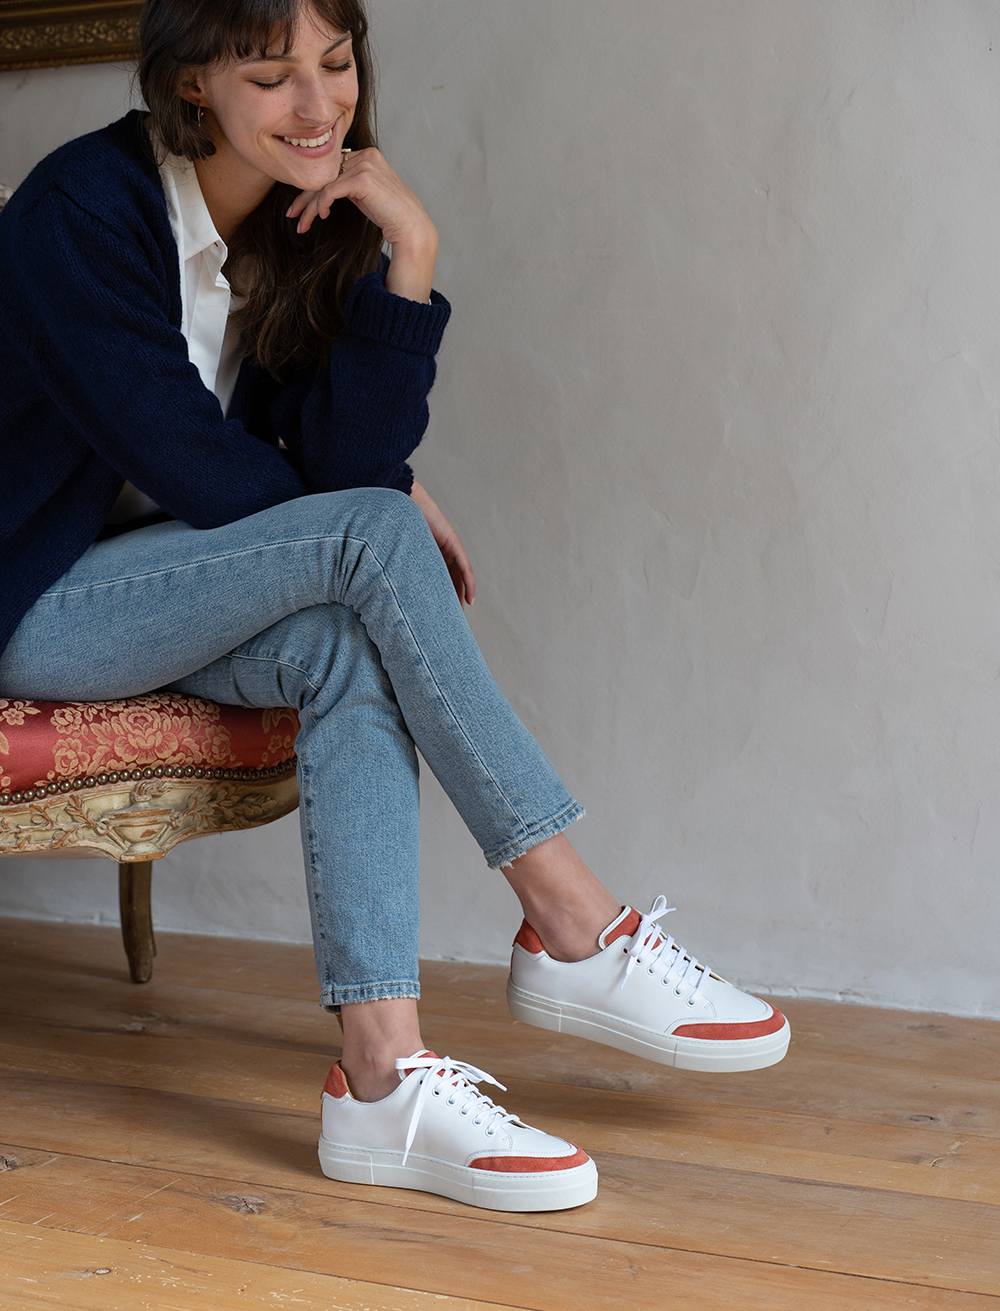 Sneakers Suzanne - Blanc et tuile